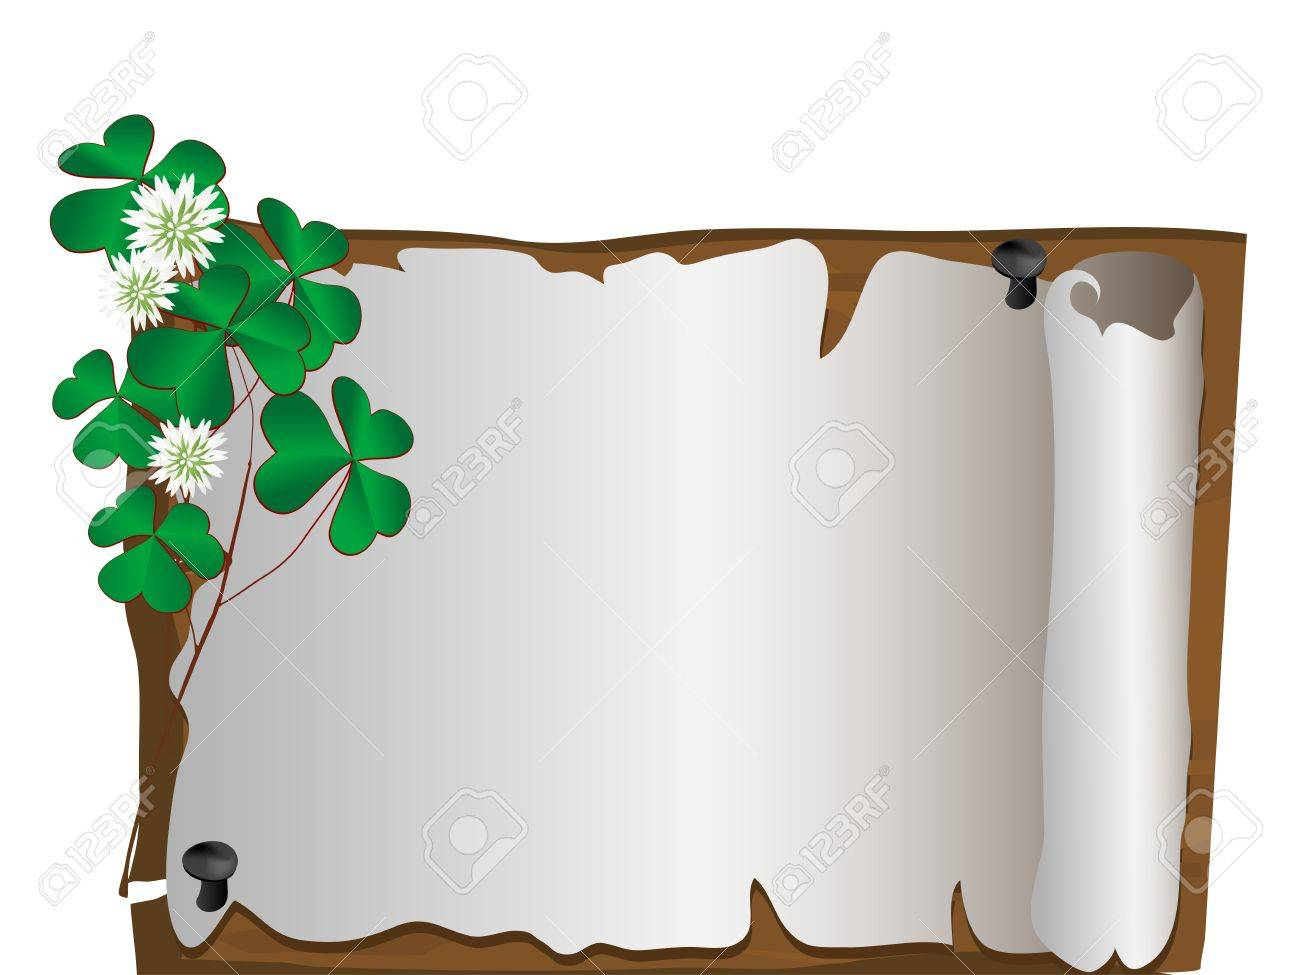 Blank paper with border from clover leaves Stock Vector - 17728781